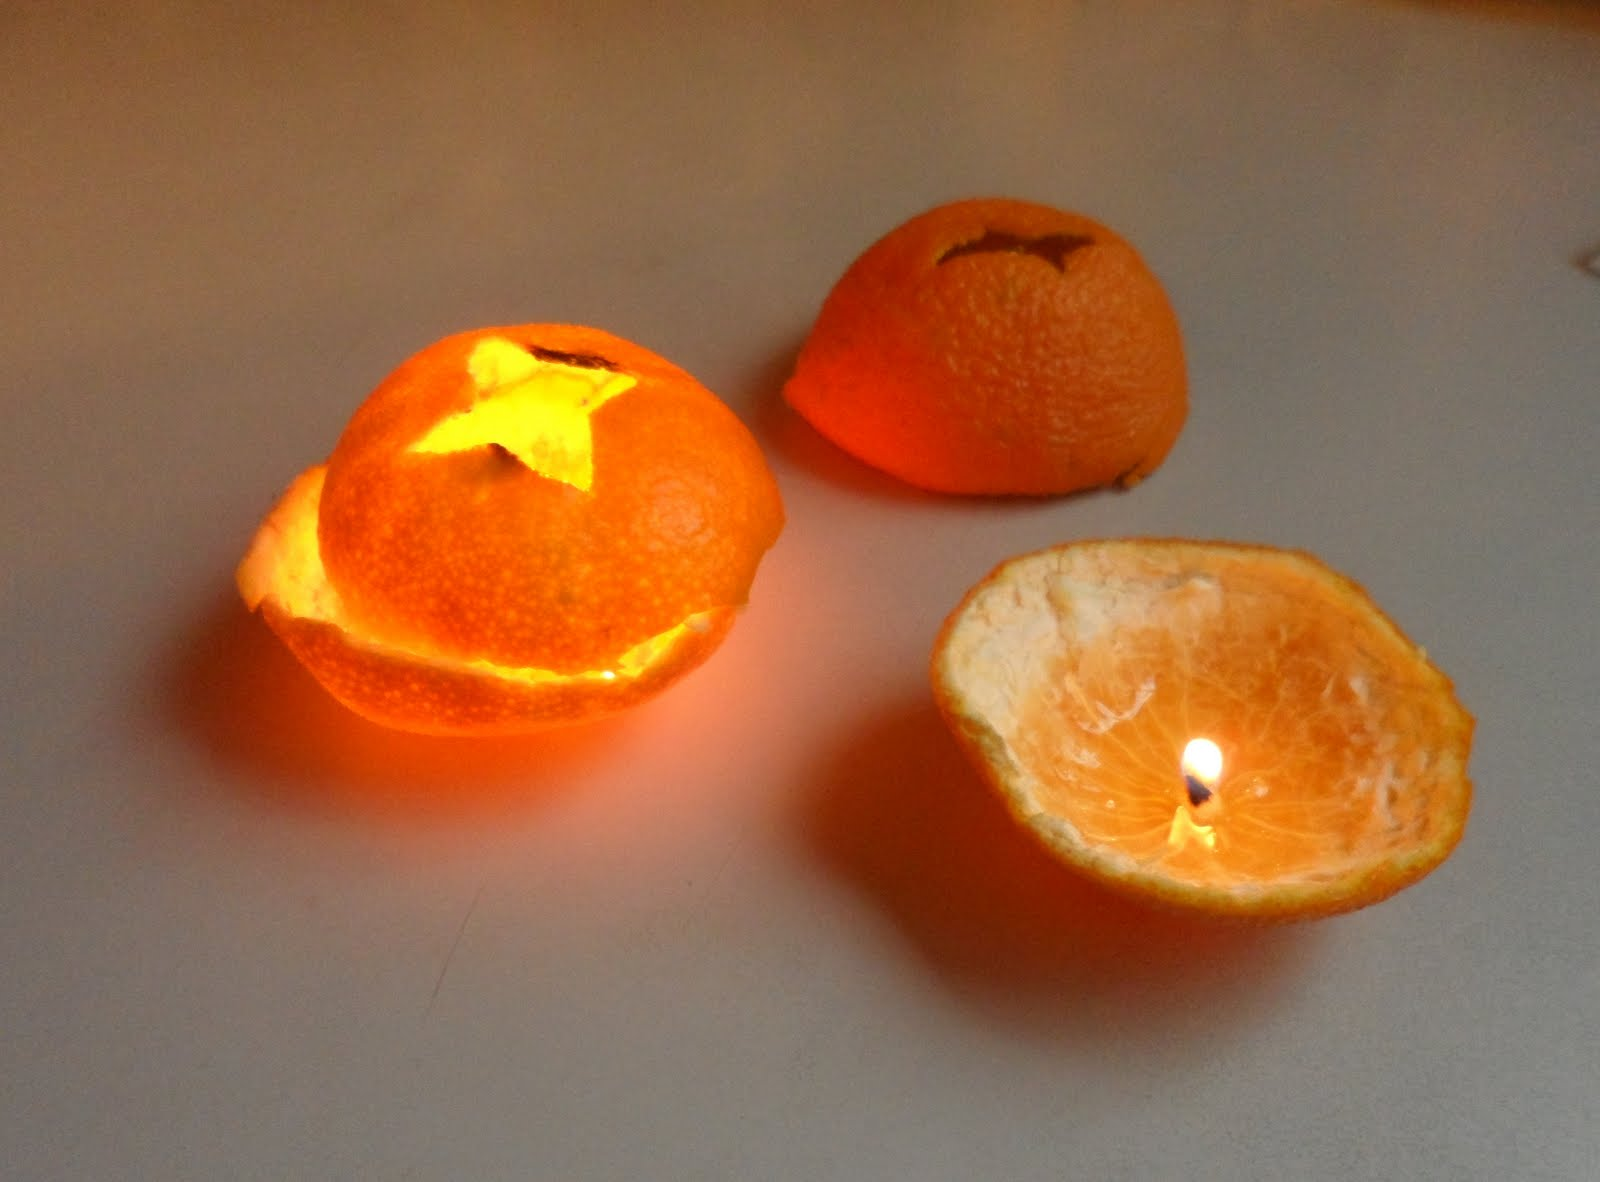 Dead easy diy clementine candles joyarna joyunas knitting blog clementine orange oil lamp candles mood lighting do it yourself craft solutioingenieria Image collections